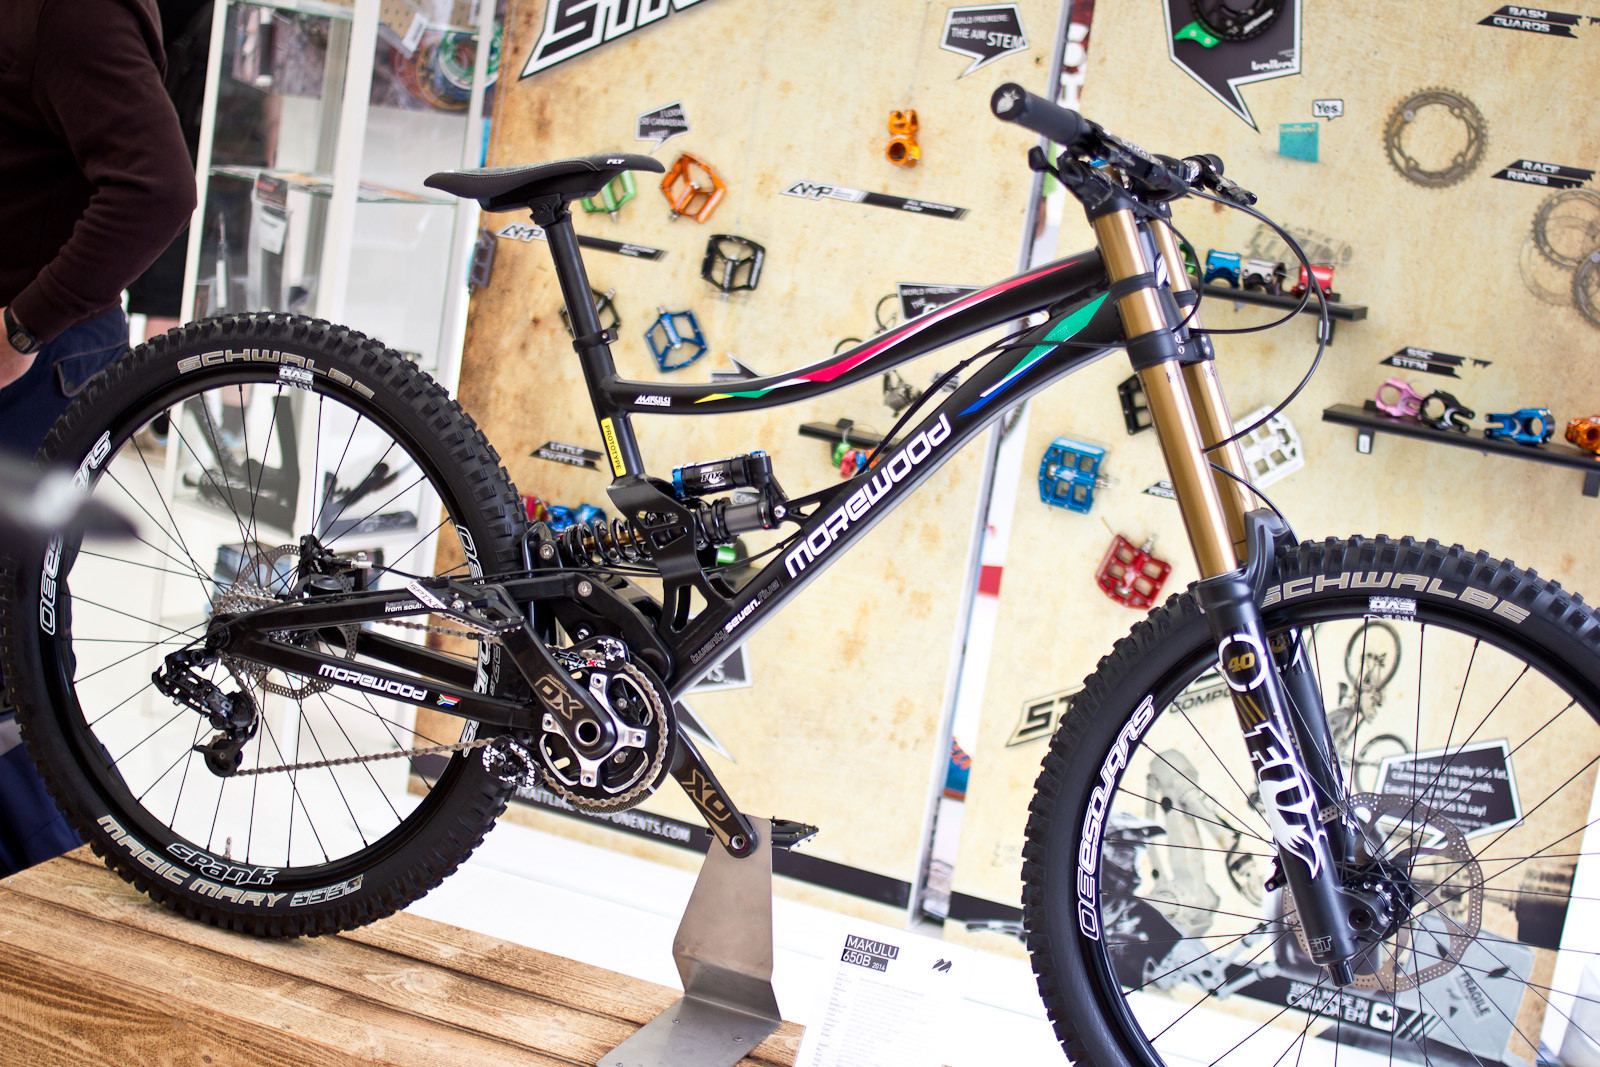 2014 Morewood Makulu 650B Prototype DH Bike - 2014 Downhill Bikes at Eurobike 2013 - Mountain Biking Pictures - Vital MTB